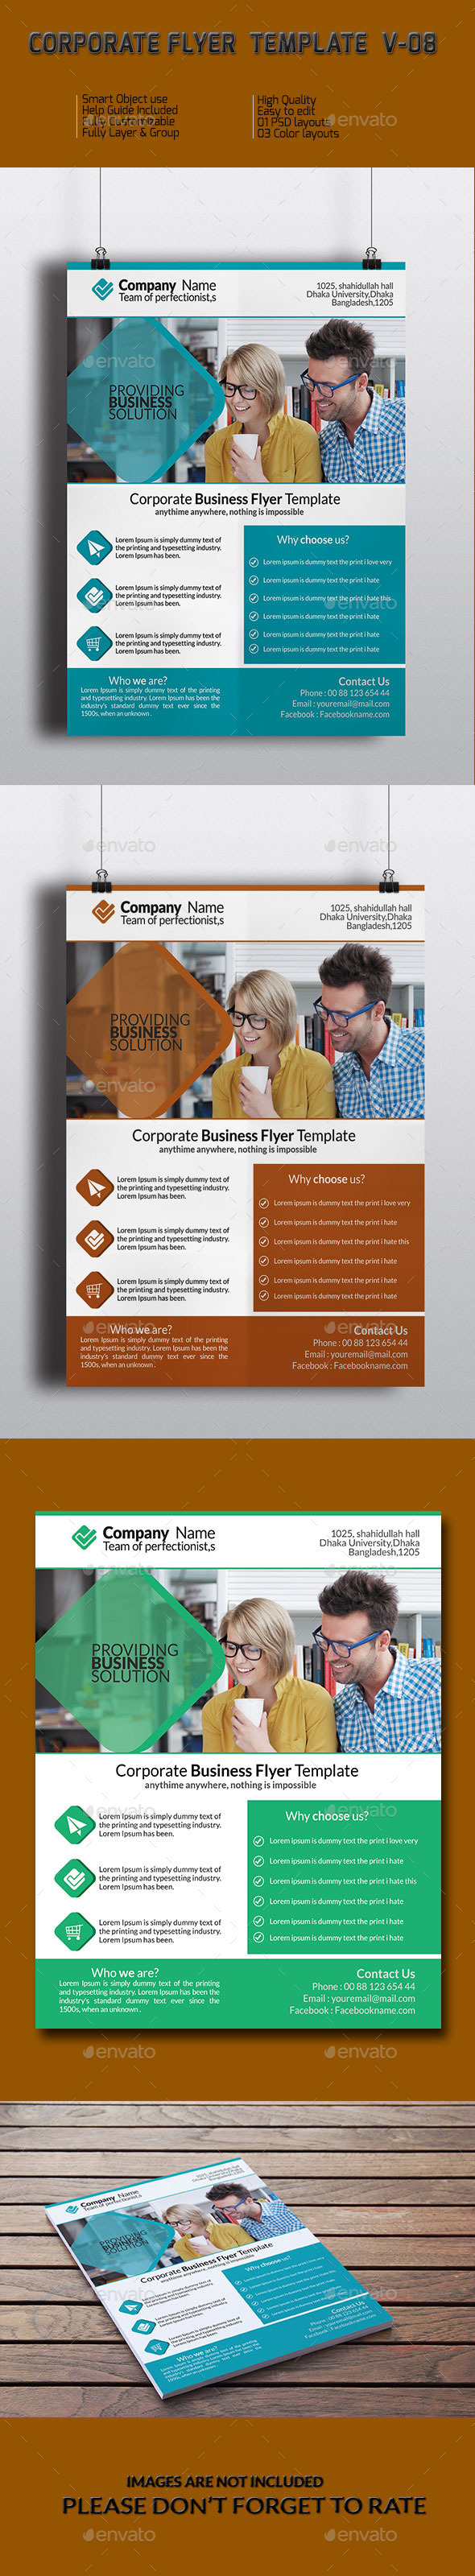 Corporate Business Flyer Template V-08 - Corporate Flyers